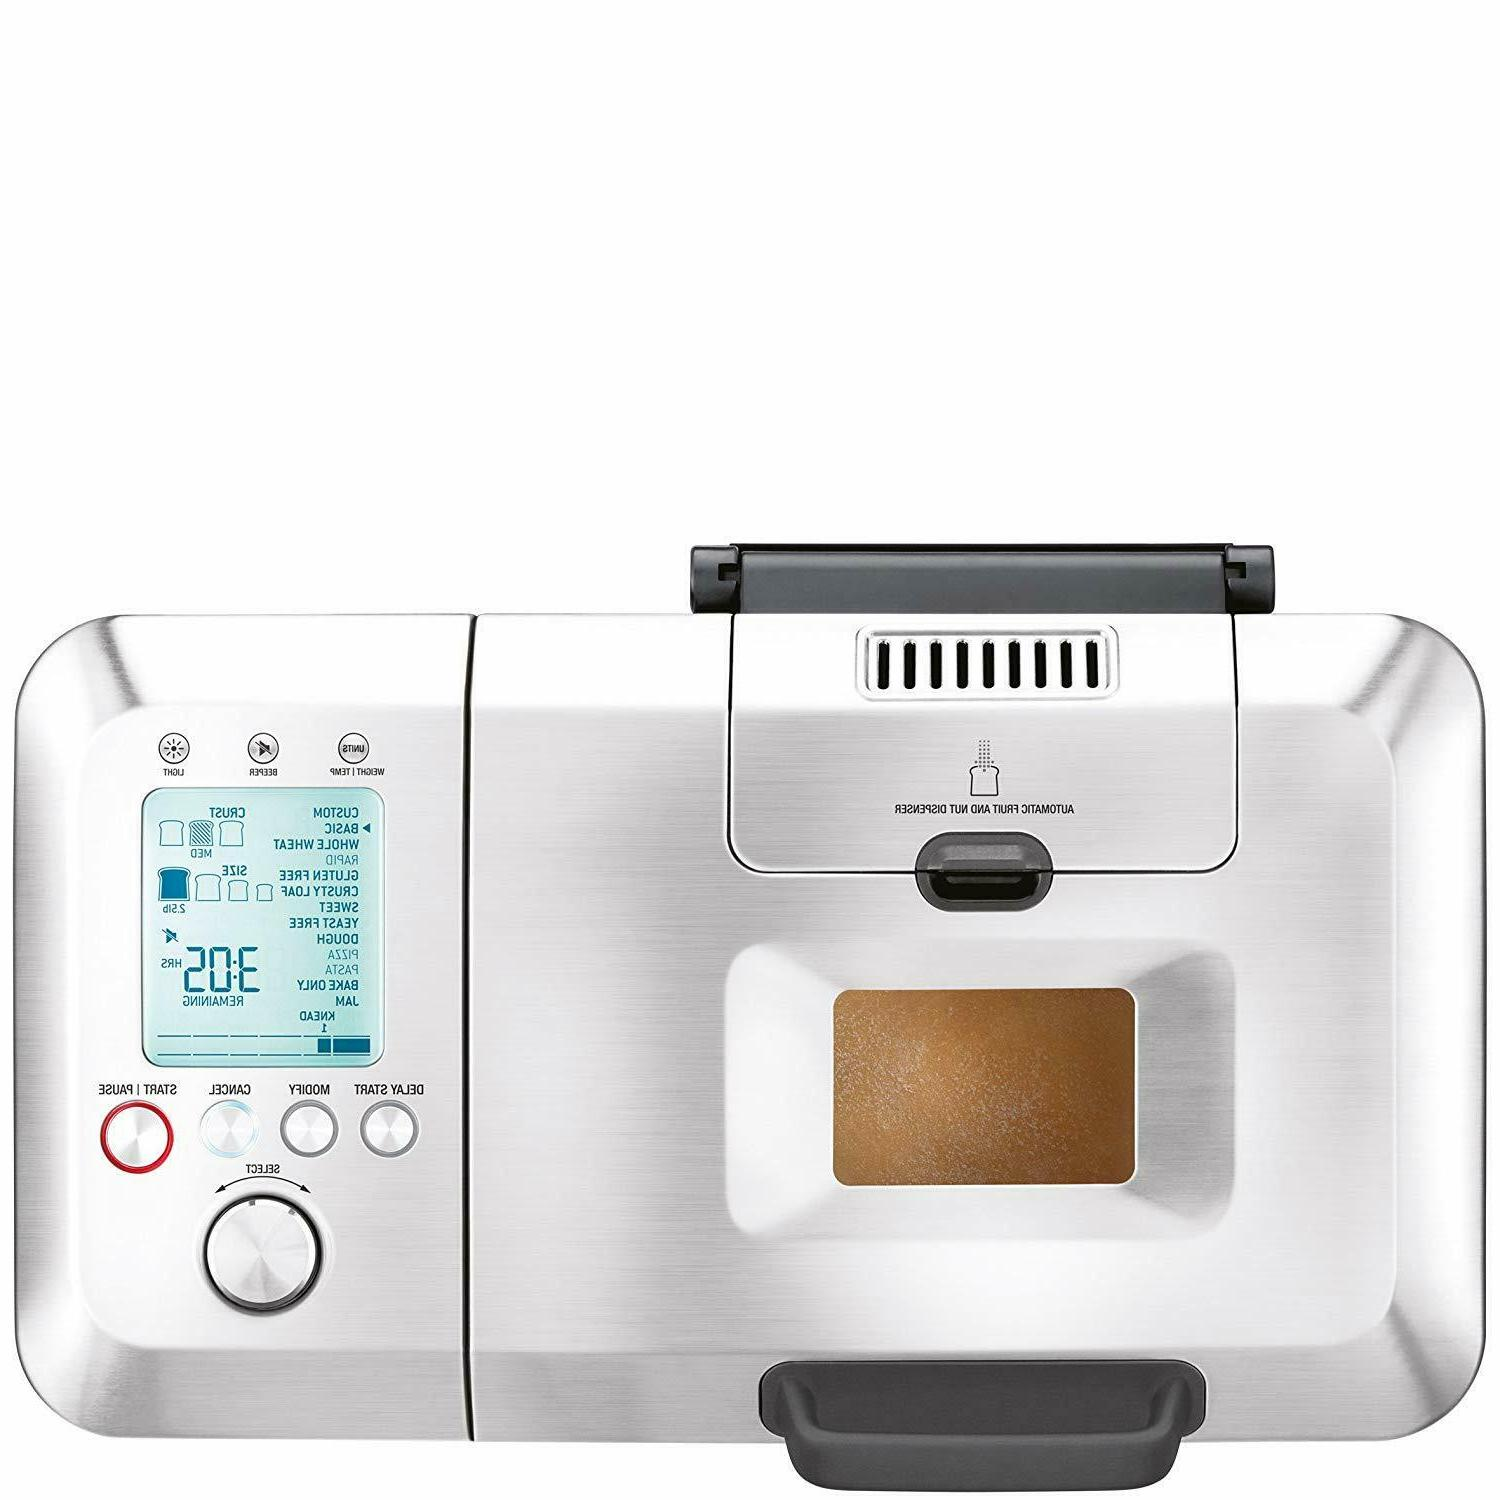 the custom loaf bread maker with automatic